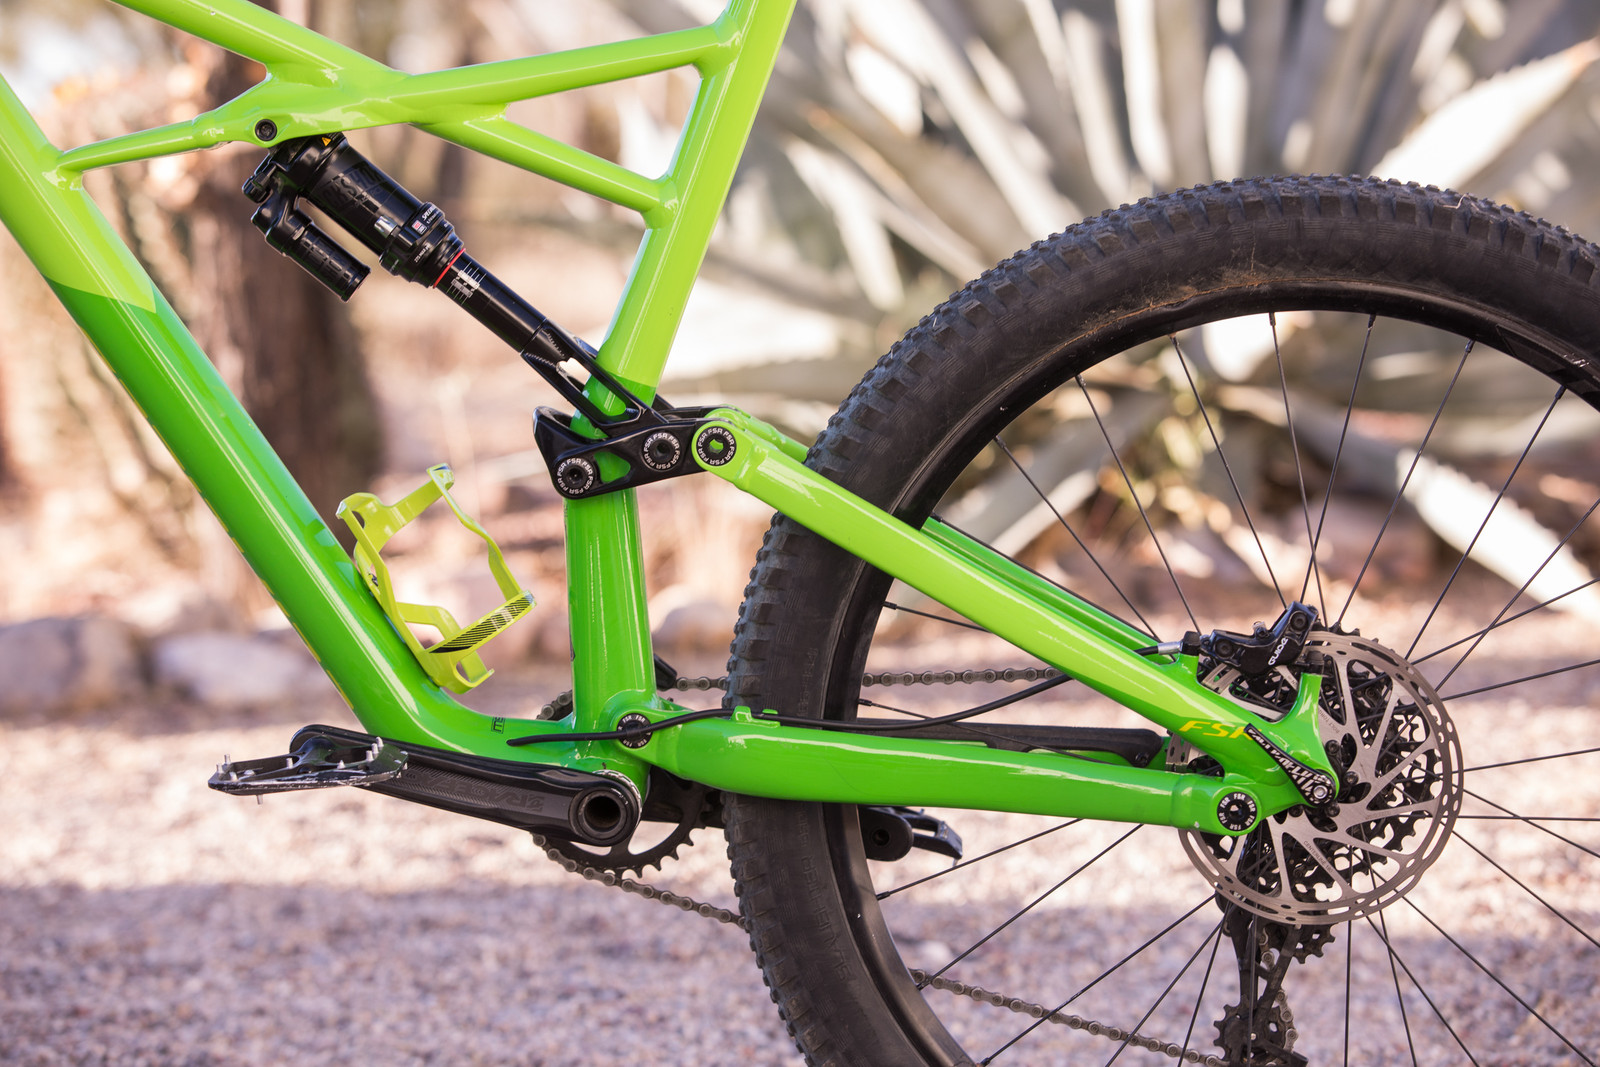 a3d9943858d Specialized bumped the front and rear travel up 5mm from the previous model  to 170mm. The beefed up rear end is now bridgeless like the Stumpjumper FSR,  ...